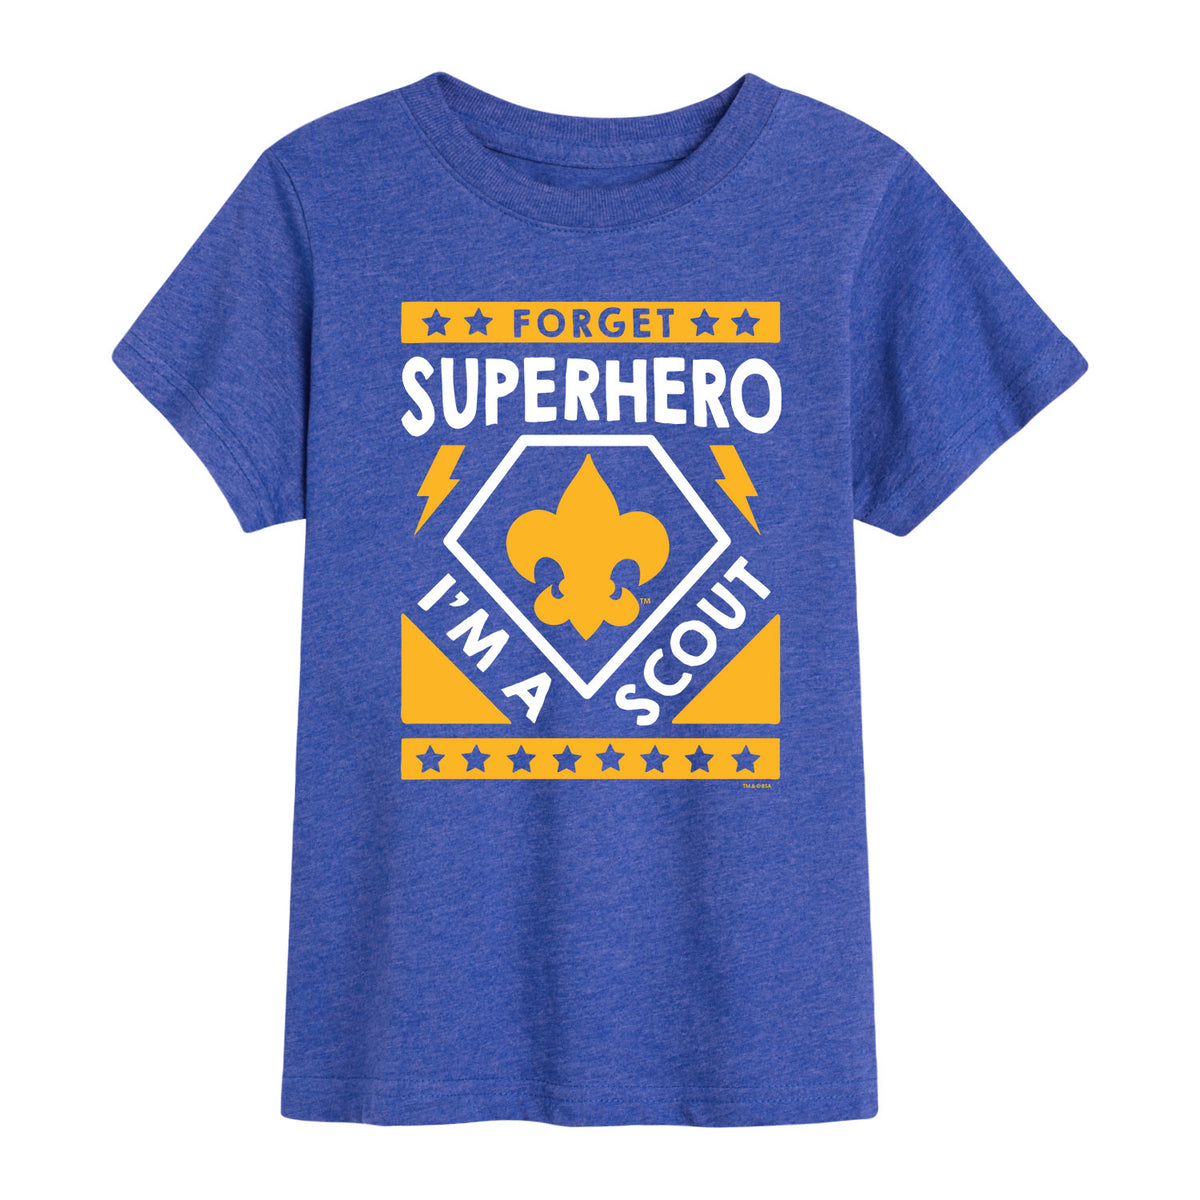 Scouts BSA - Forget Superhero I'm A Scout - Youth Short Sleeve T-Shirt